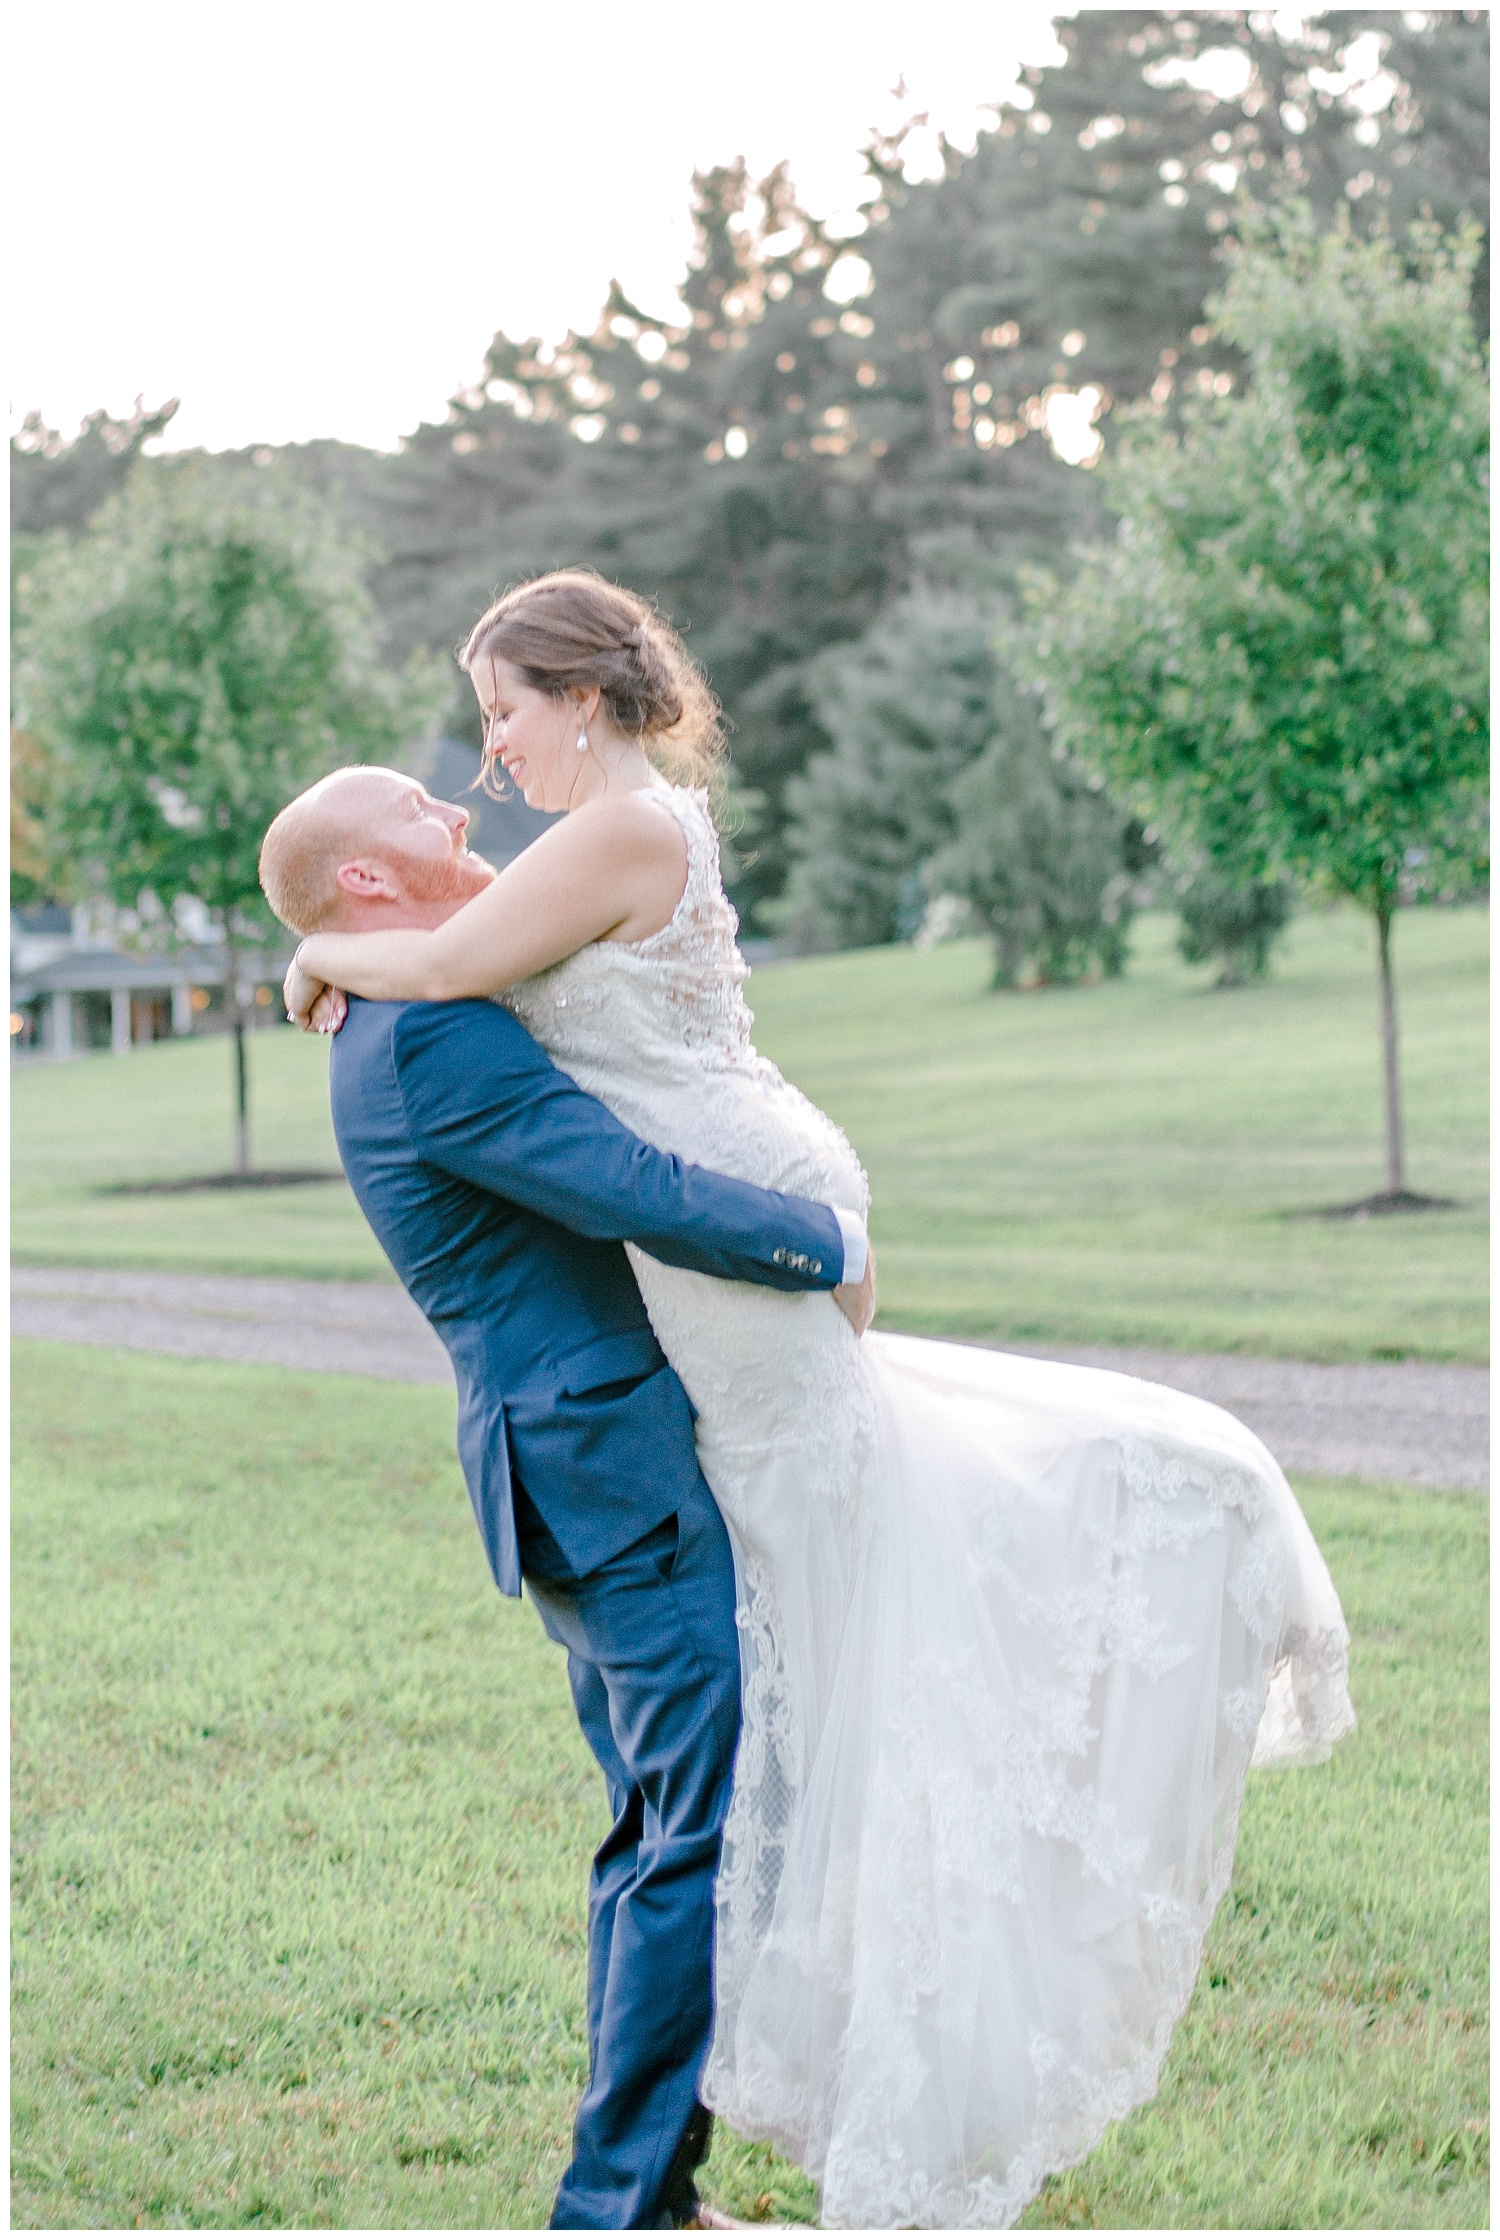 Navy and Blush pink inspired summertime whitewoods wedding in Northeastern Pennsylvania NEPA wapwallopen wedding venue by  PA based wedding and lifestyle photographer Lytle photography_0070.jpg